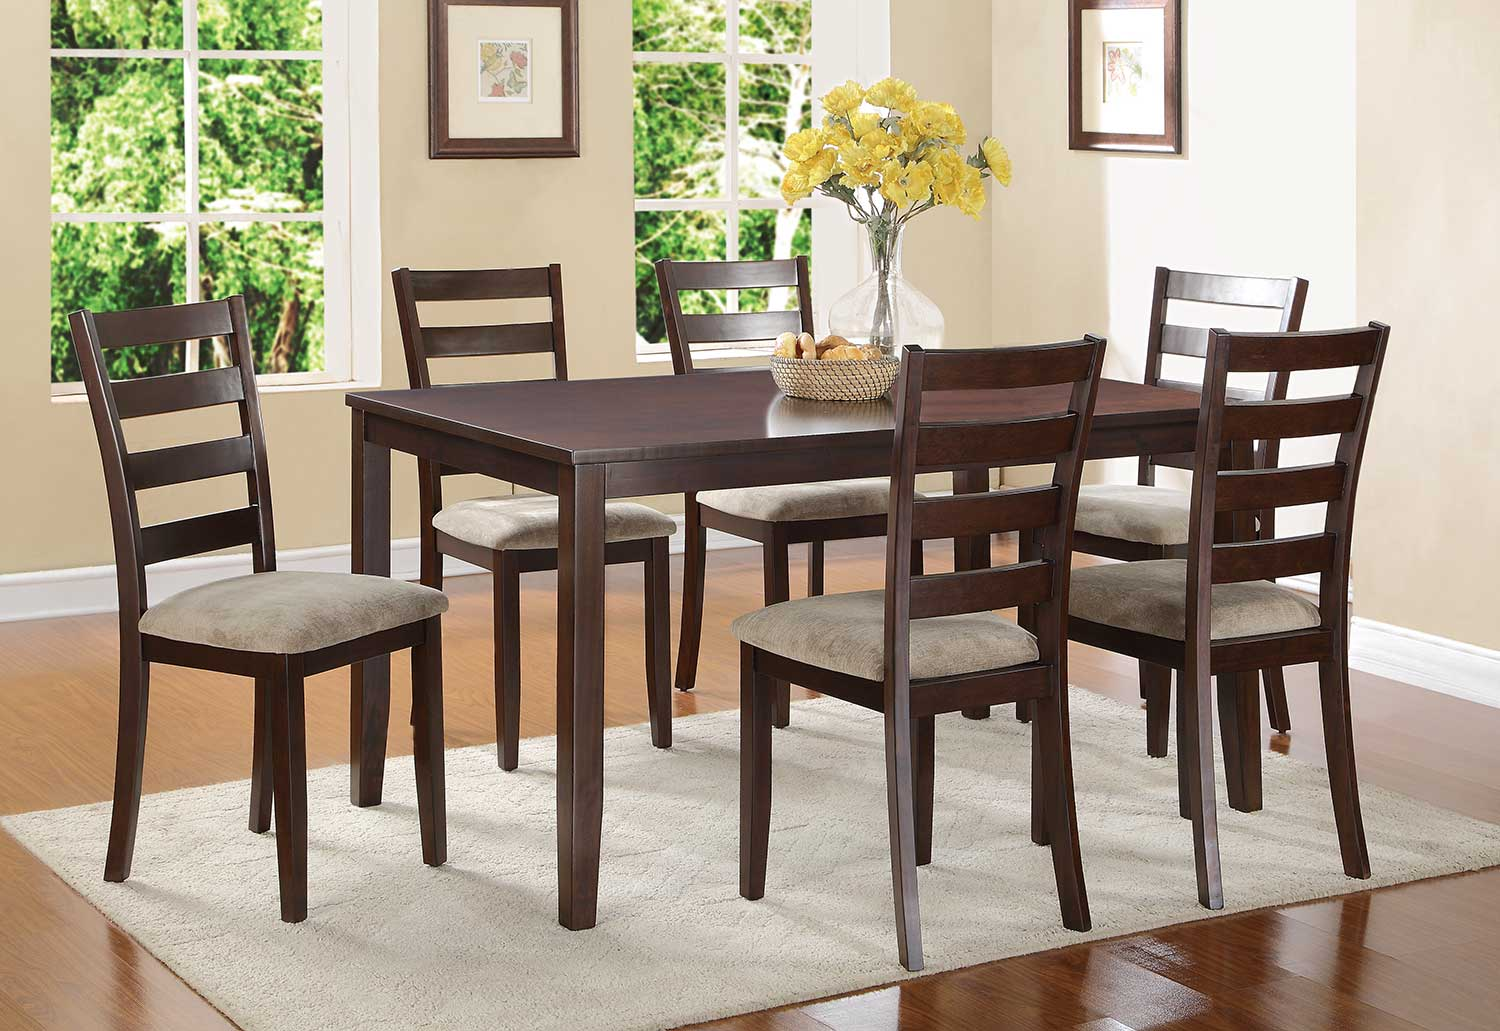 Homelegance Galion 7-Piece Pack Dinette Set - Cherry